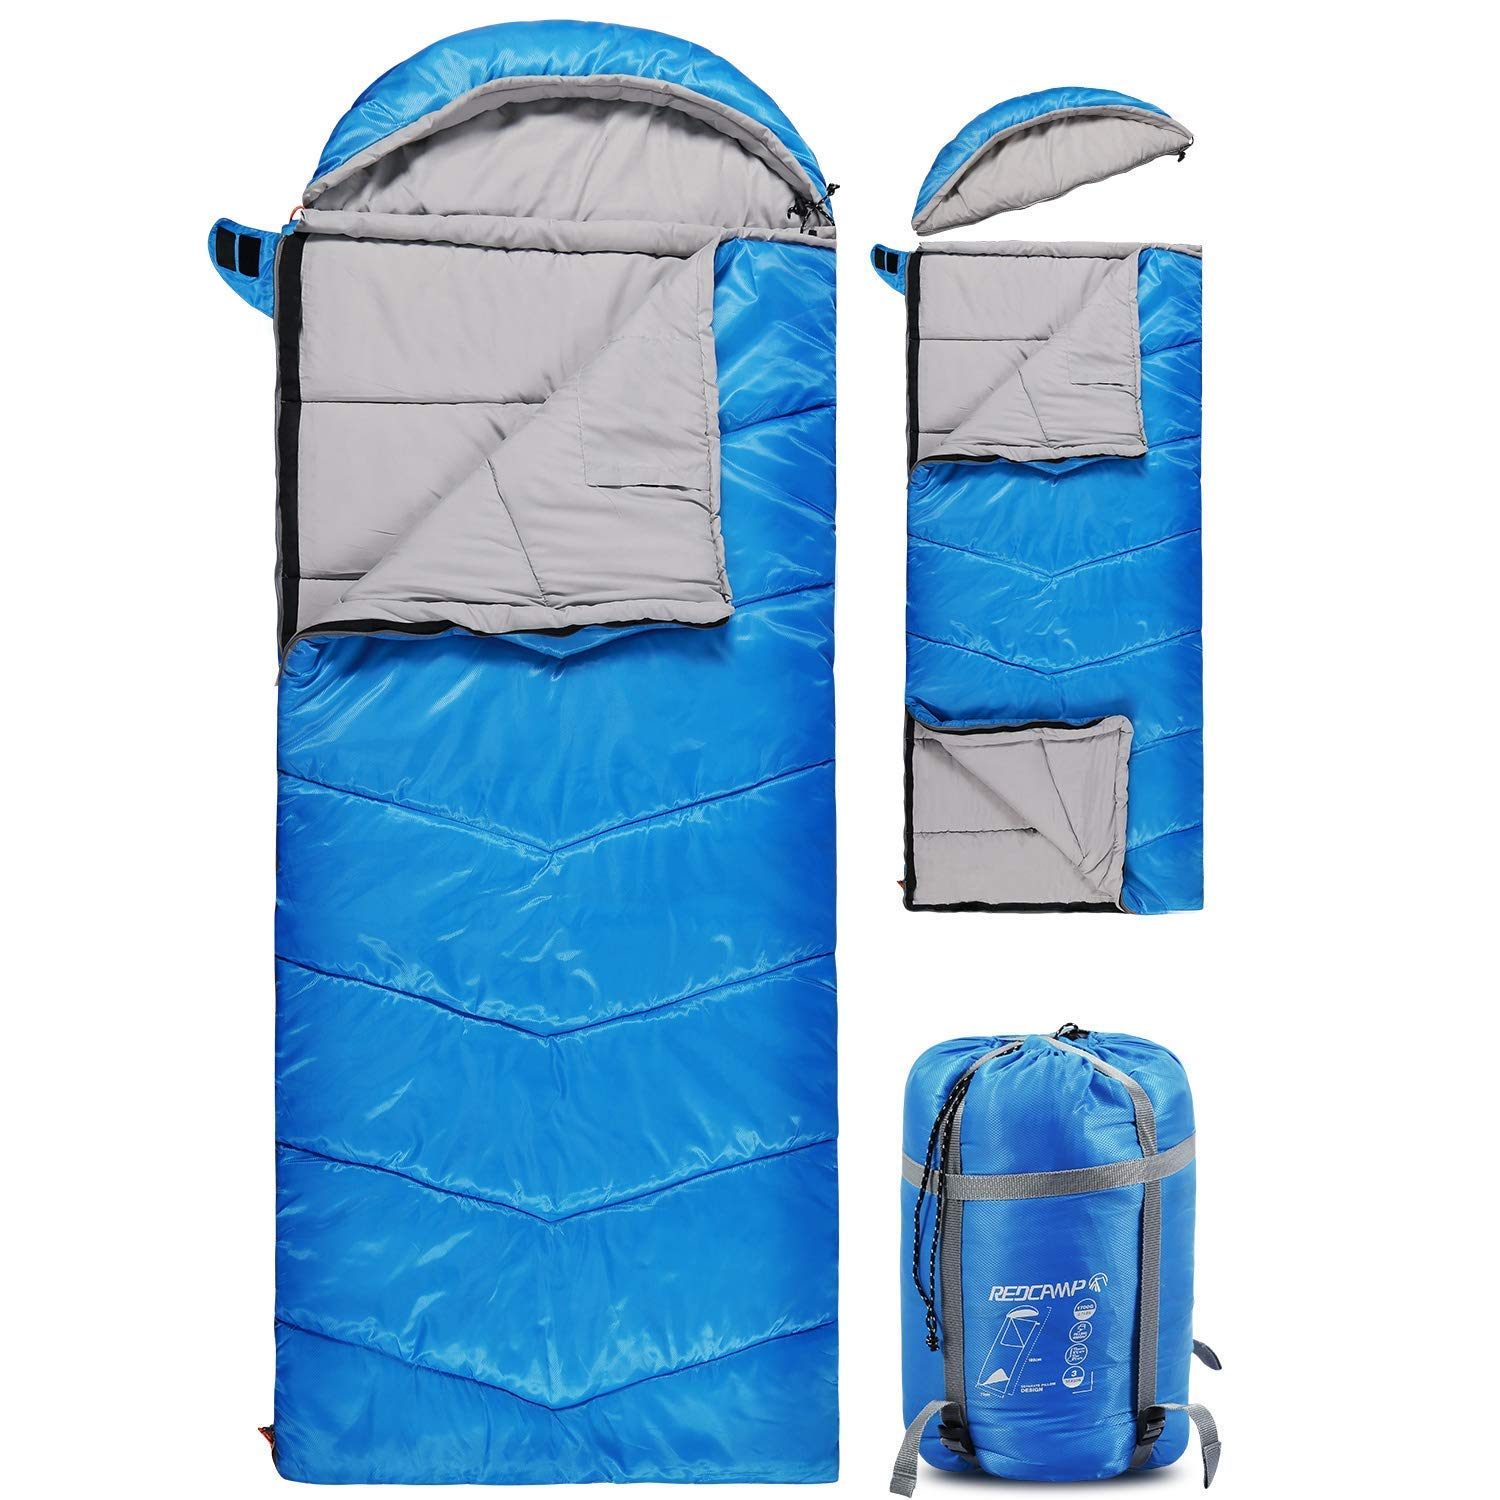 REDCAMP Kids Sleeping Bag for Camping with Detachable Hood, 32 Degree 3 Season Warm or Cold Weather Fit Boys, Girls & Teens (Blue with 3.7lbs Filling) by REDCAMP